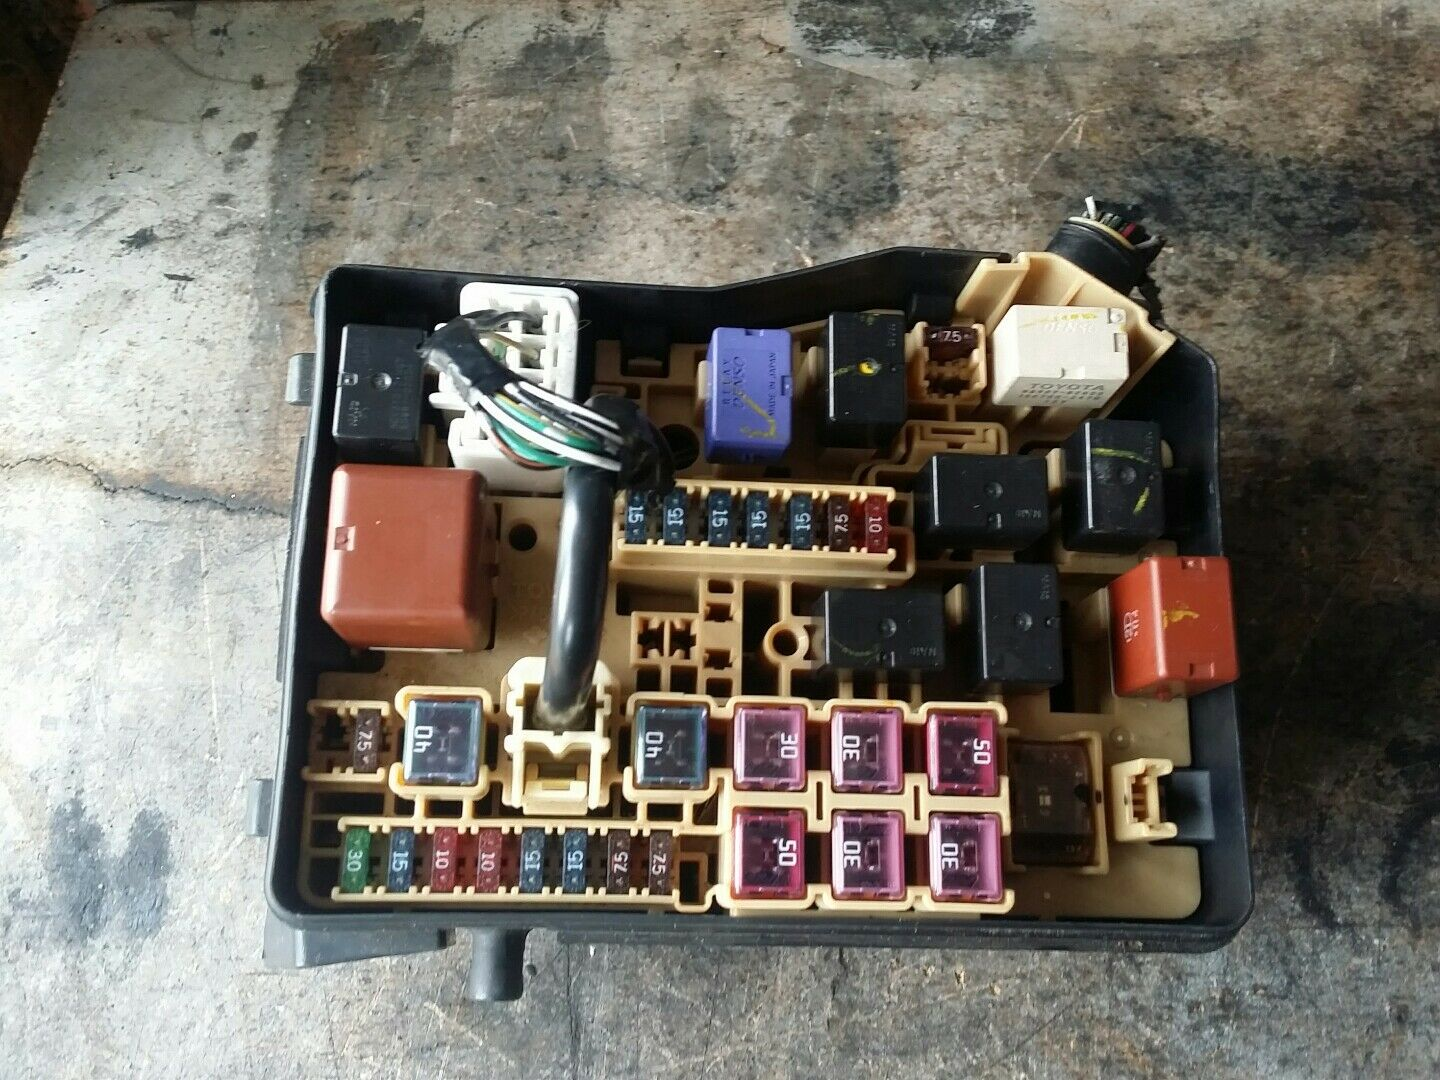 2003 Toyota Avensis Verso 20 Petrol Fuse Box 2200 Picclick Uk In 1 Of 1free Shipping